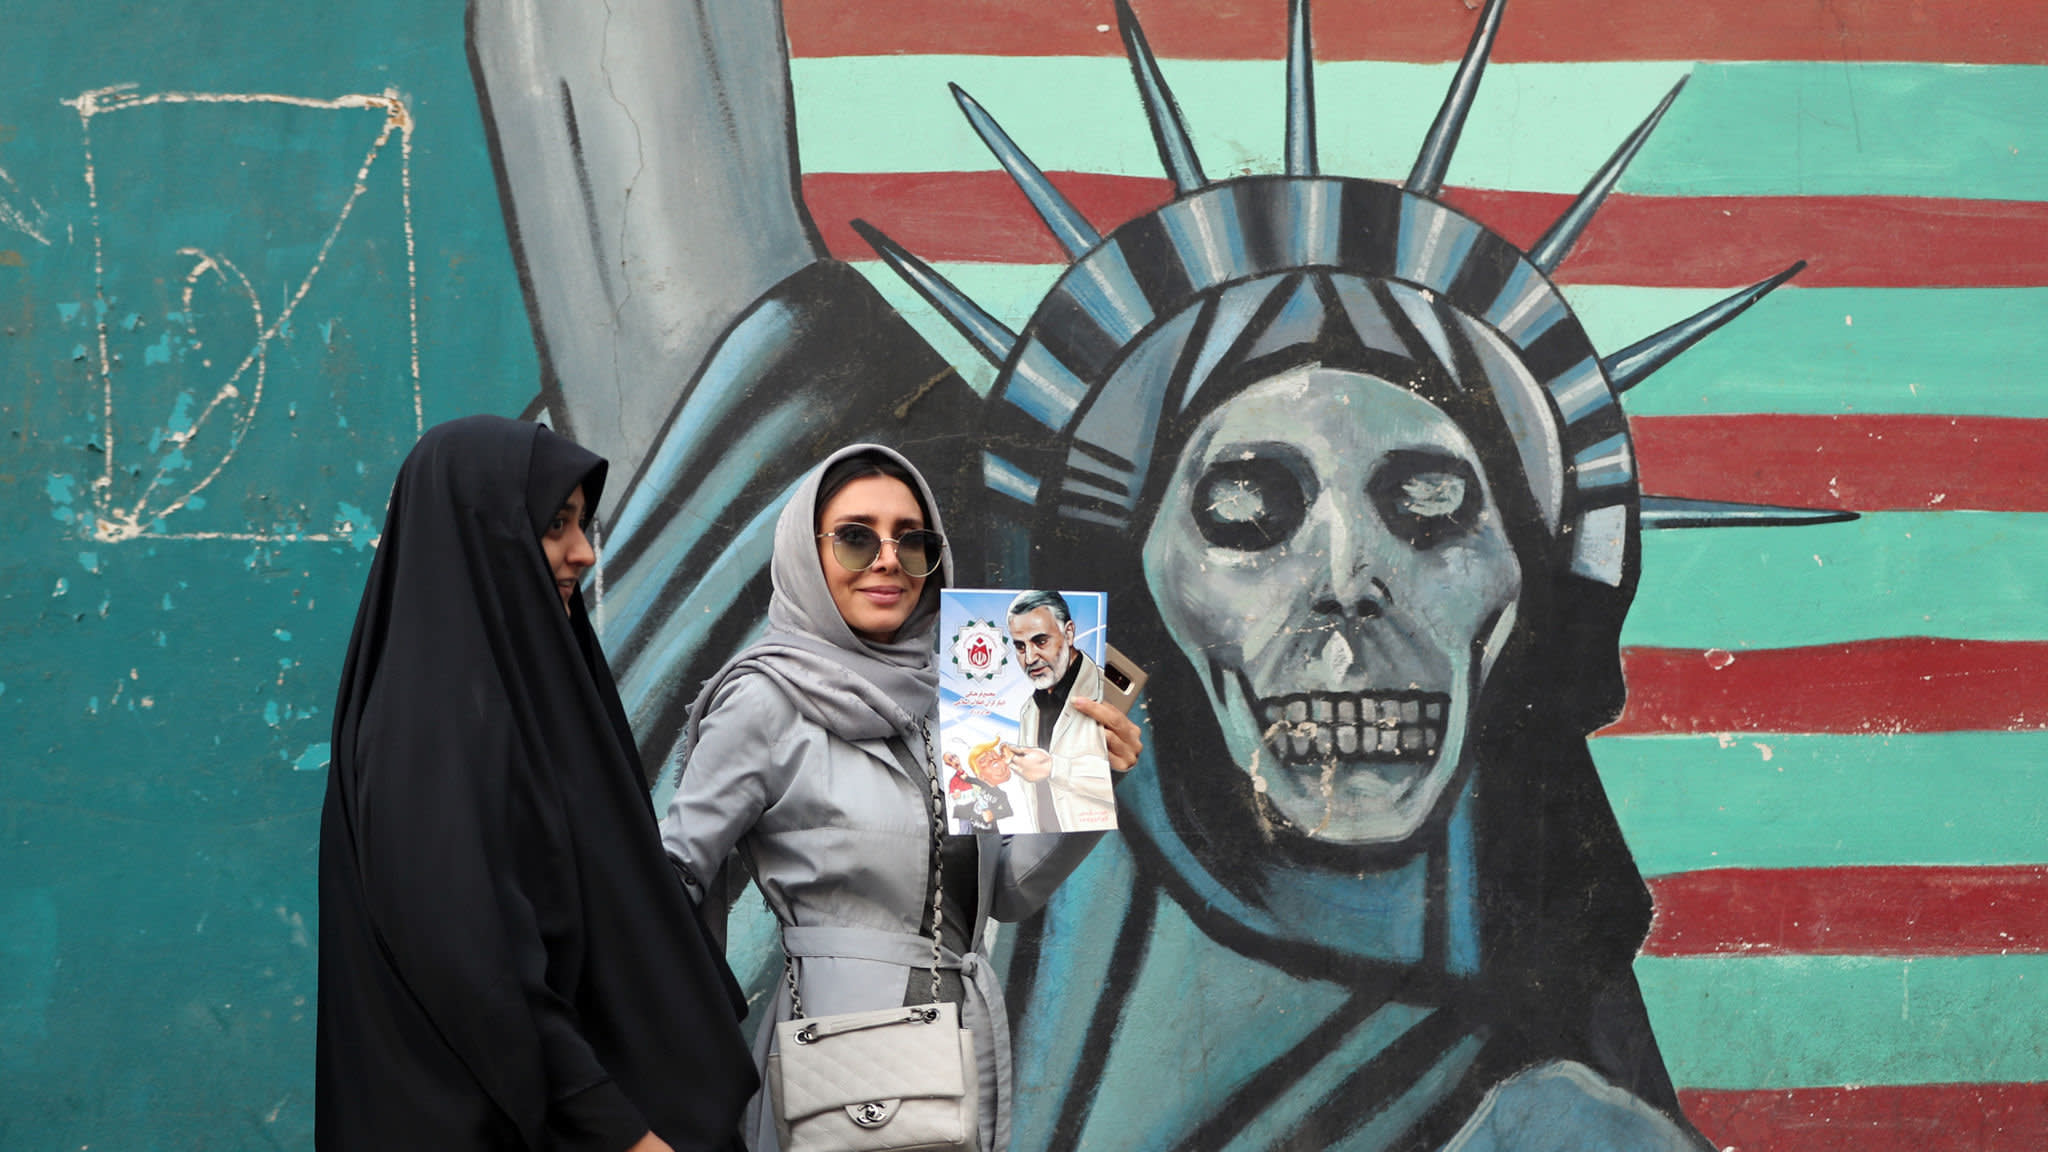 US intensifies pressure on Iran with new sanctions | Financial Times